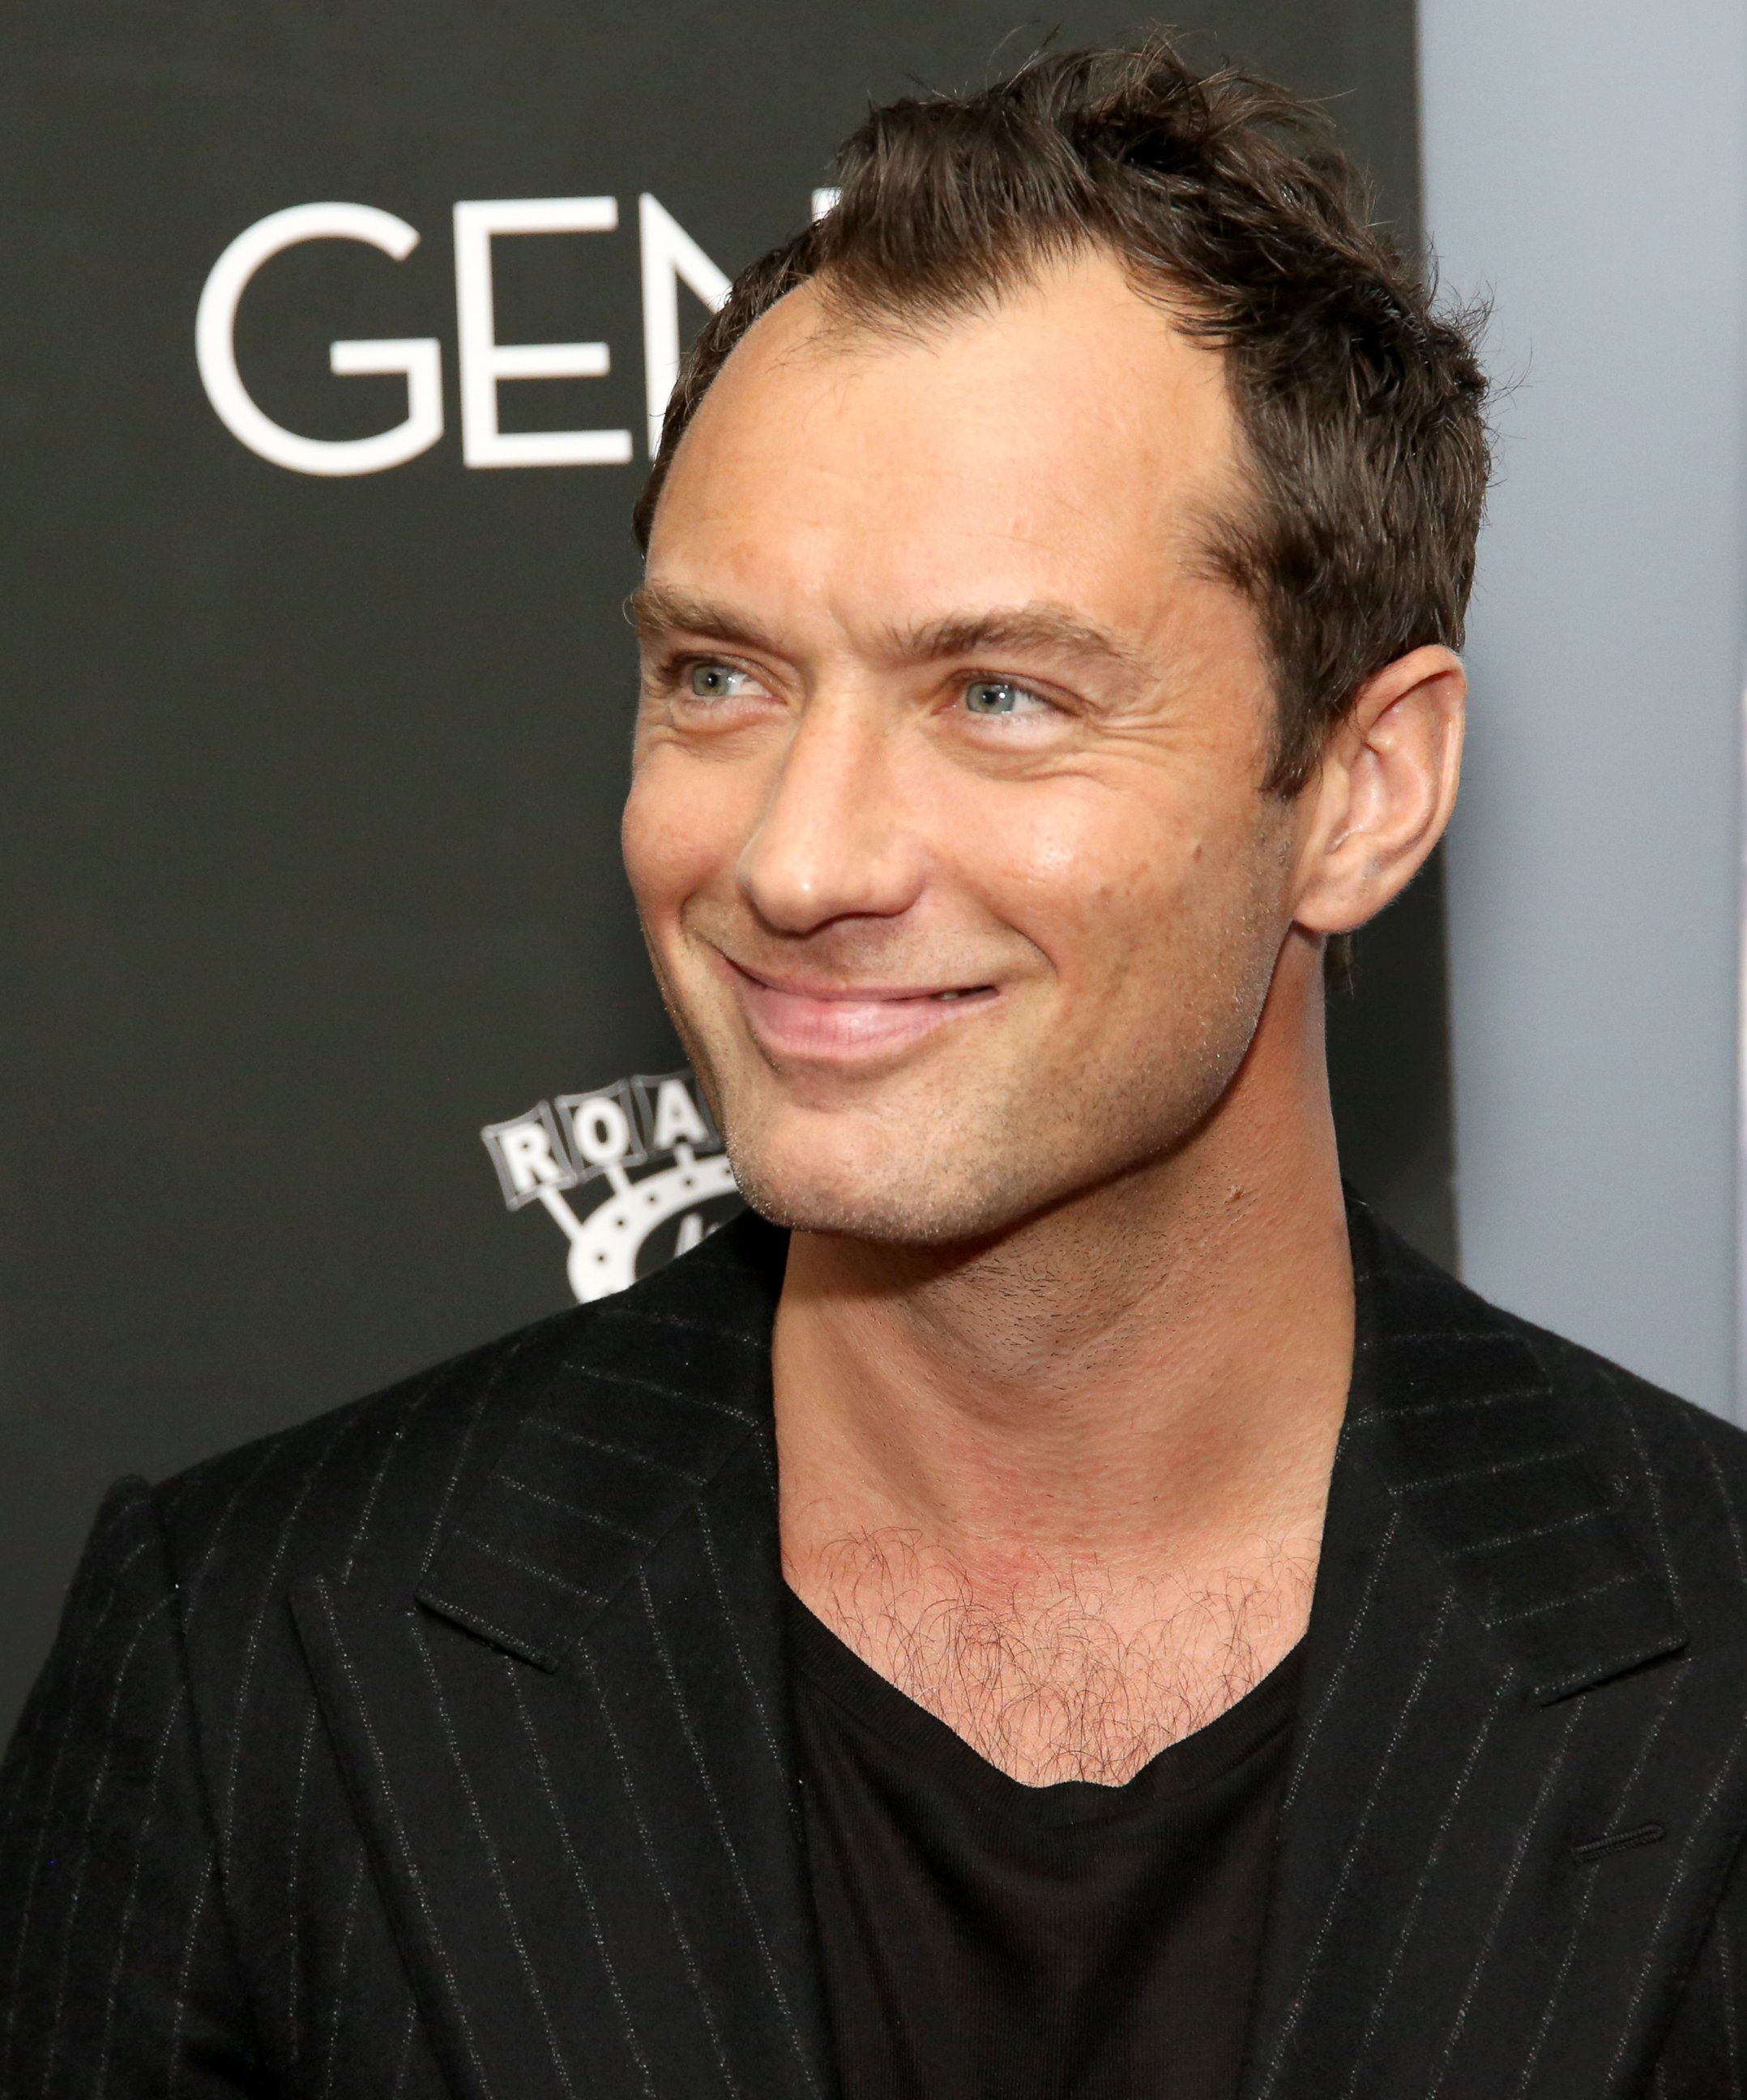 Jude Law Videos at ABC...